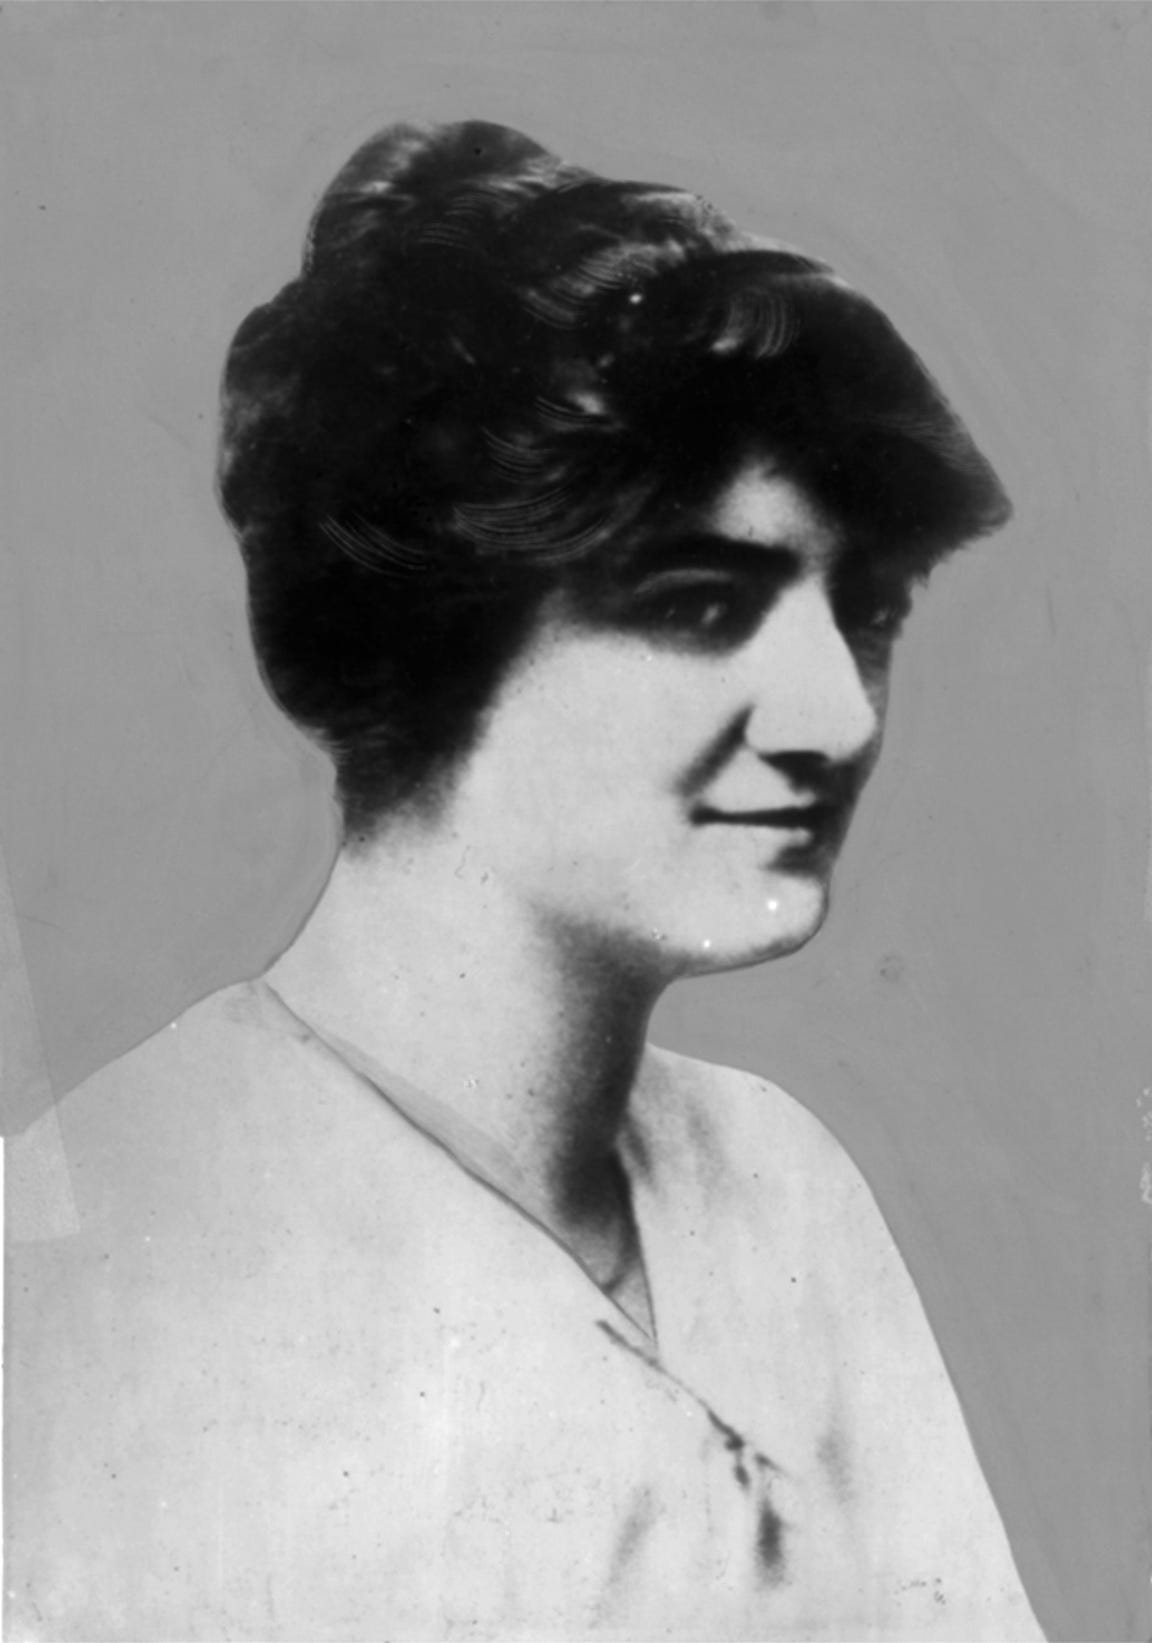 Madge Oberholtzer left her parents' Irvington home on March 15, 1925, to take a train ride with D.C. Stephenson and two of his associates. Stephenson, at the height of his Klan power, was later arrested and served time for her death.